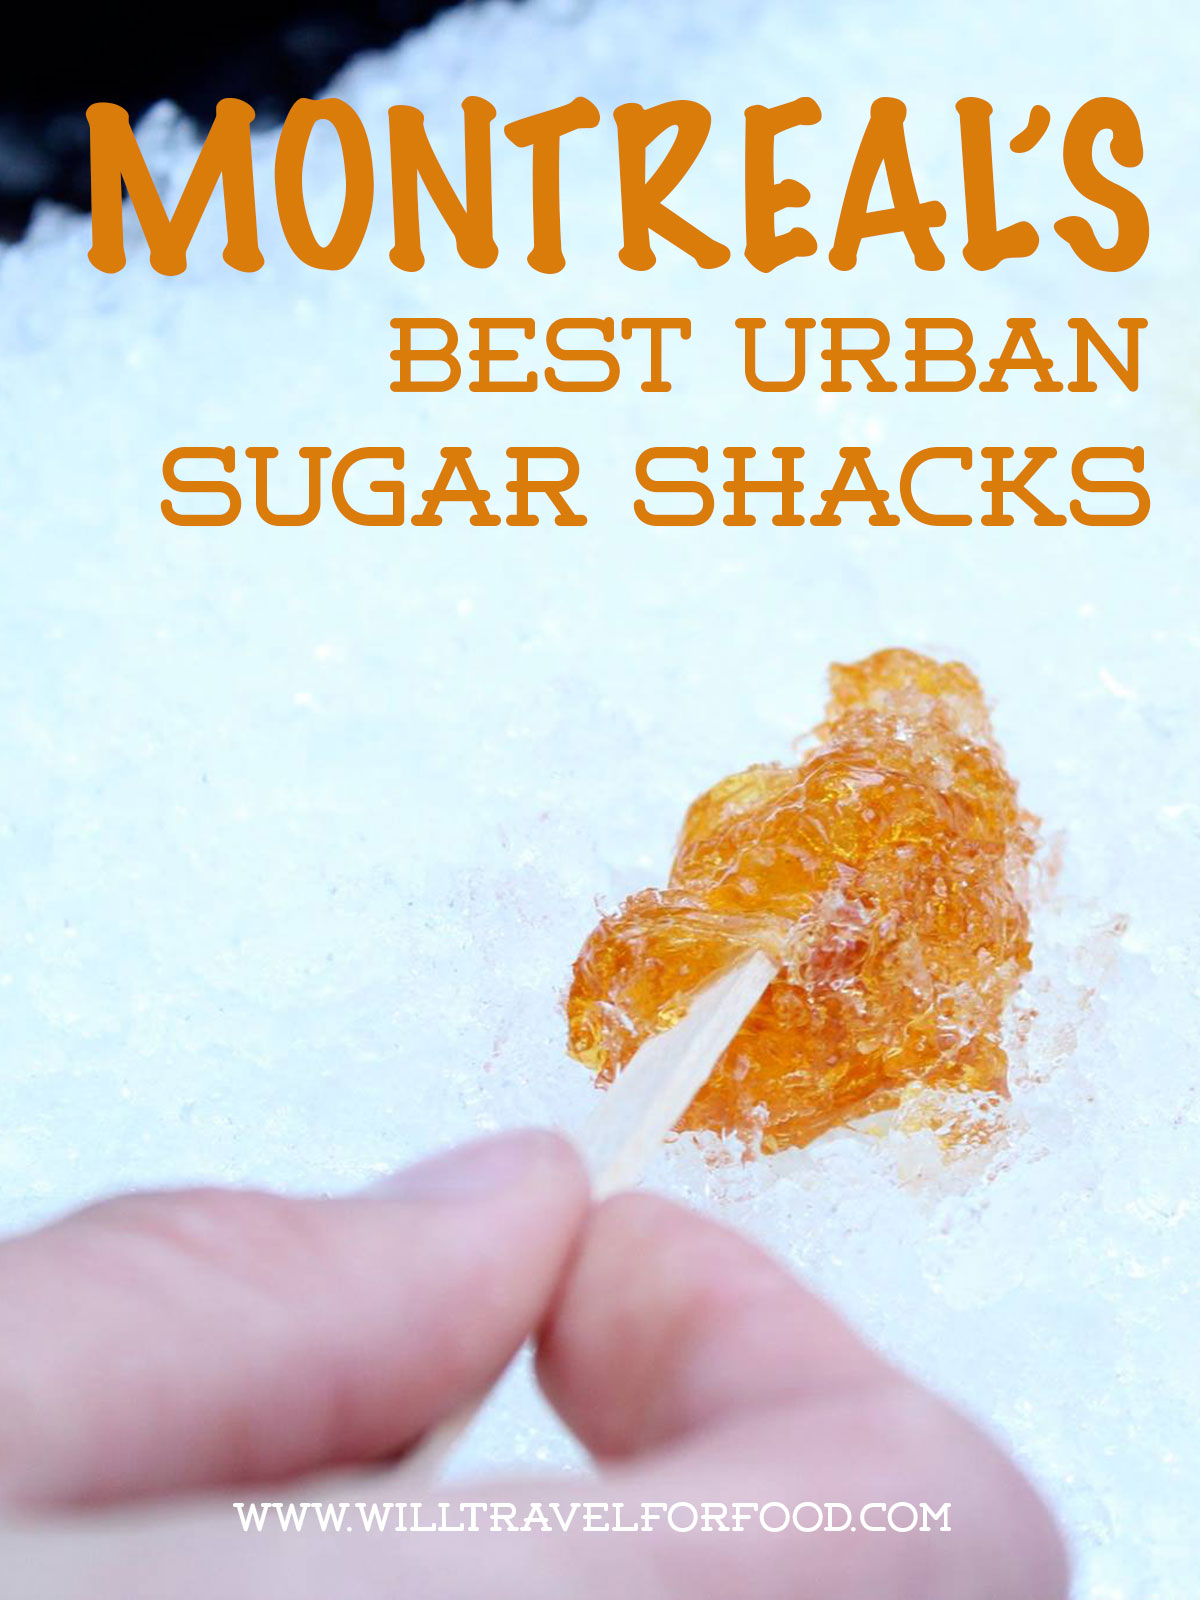 montreal-best-sugar-shack © Will Travel for Food